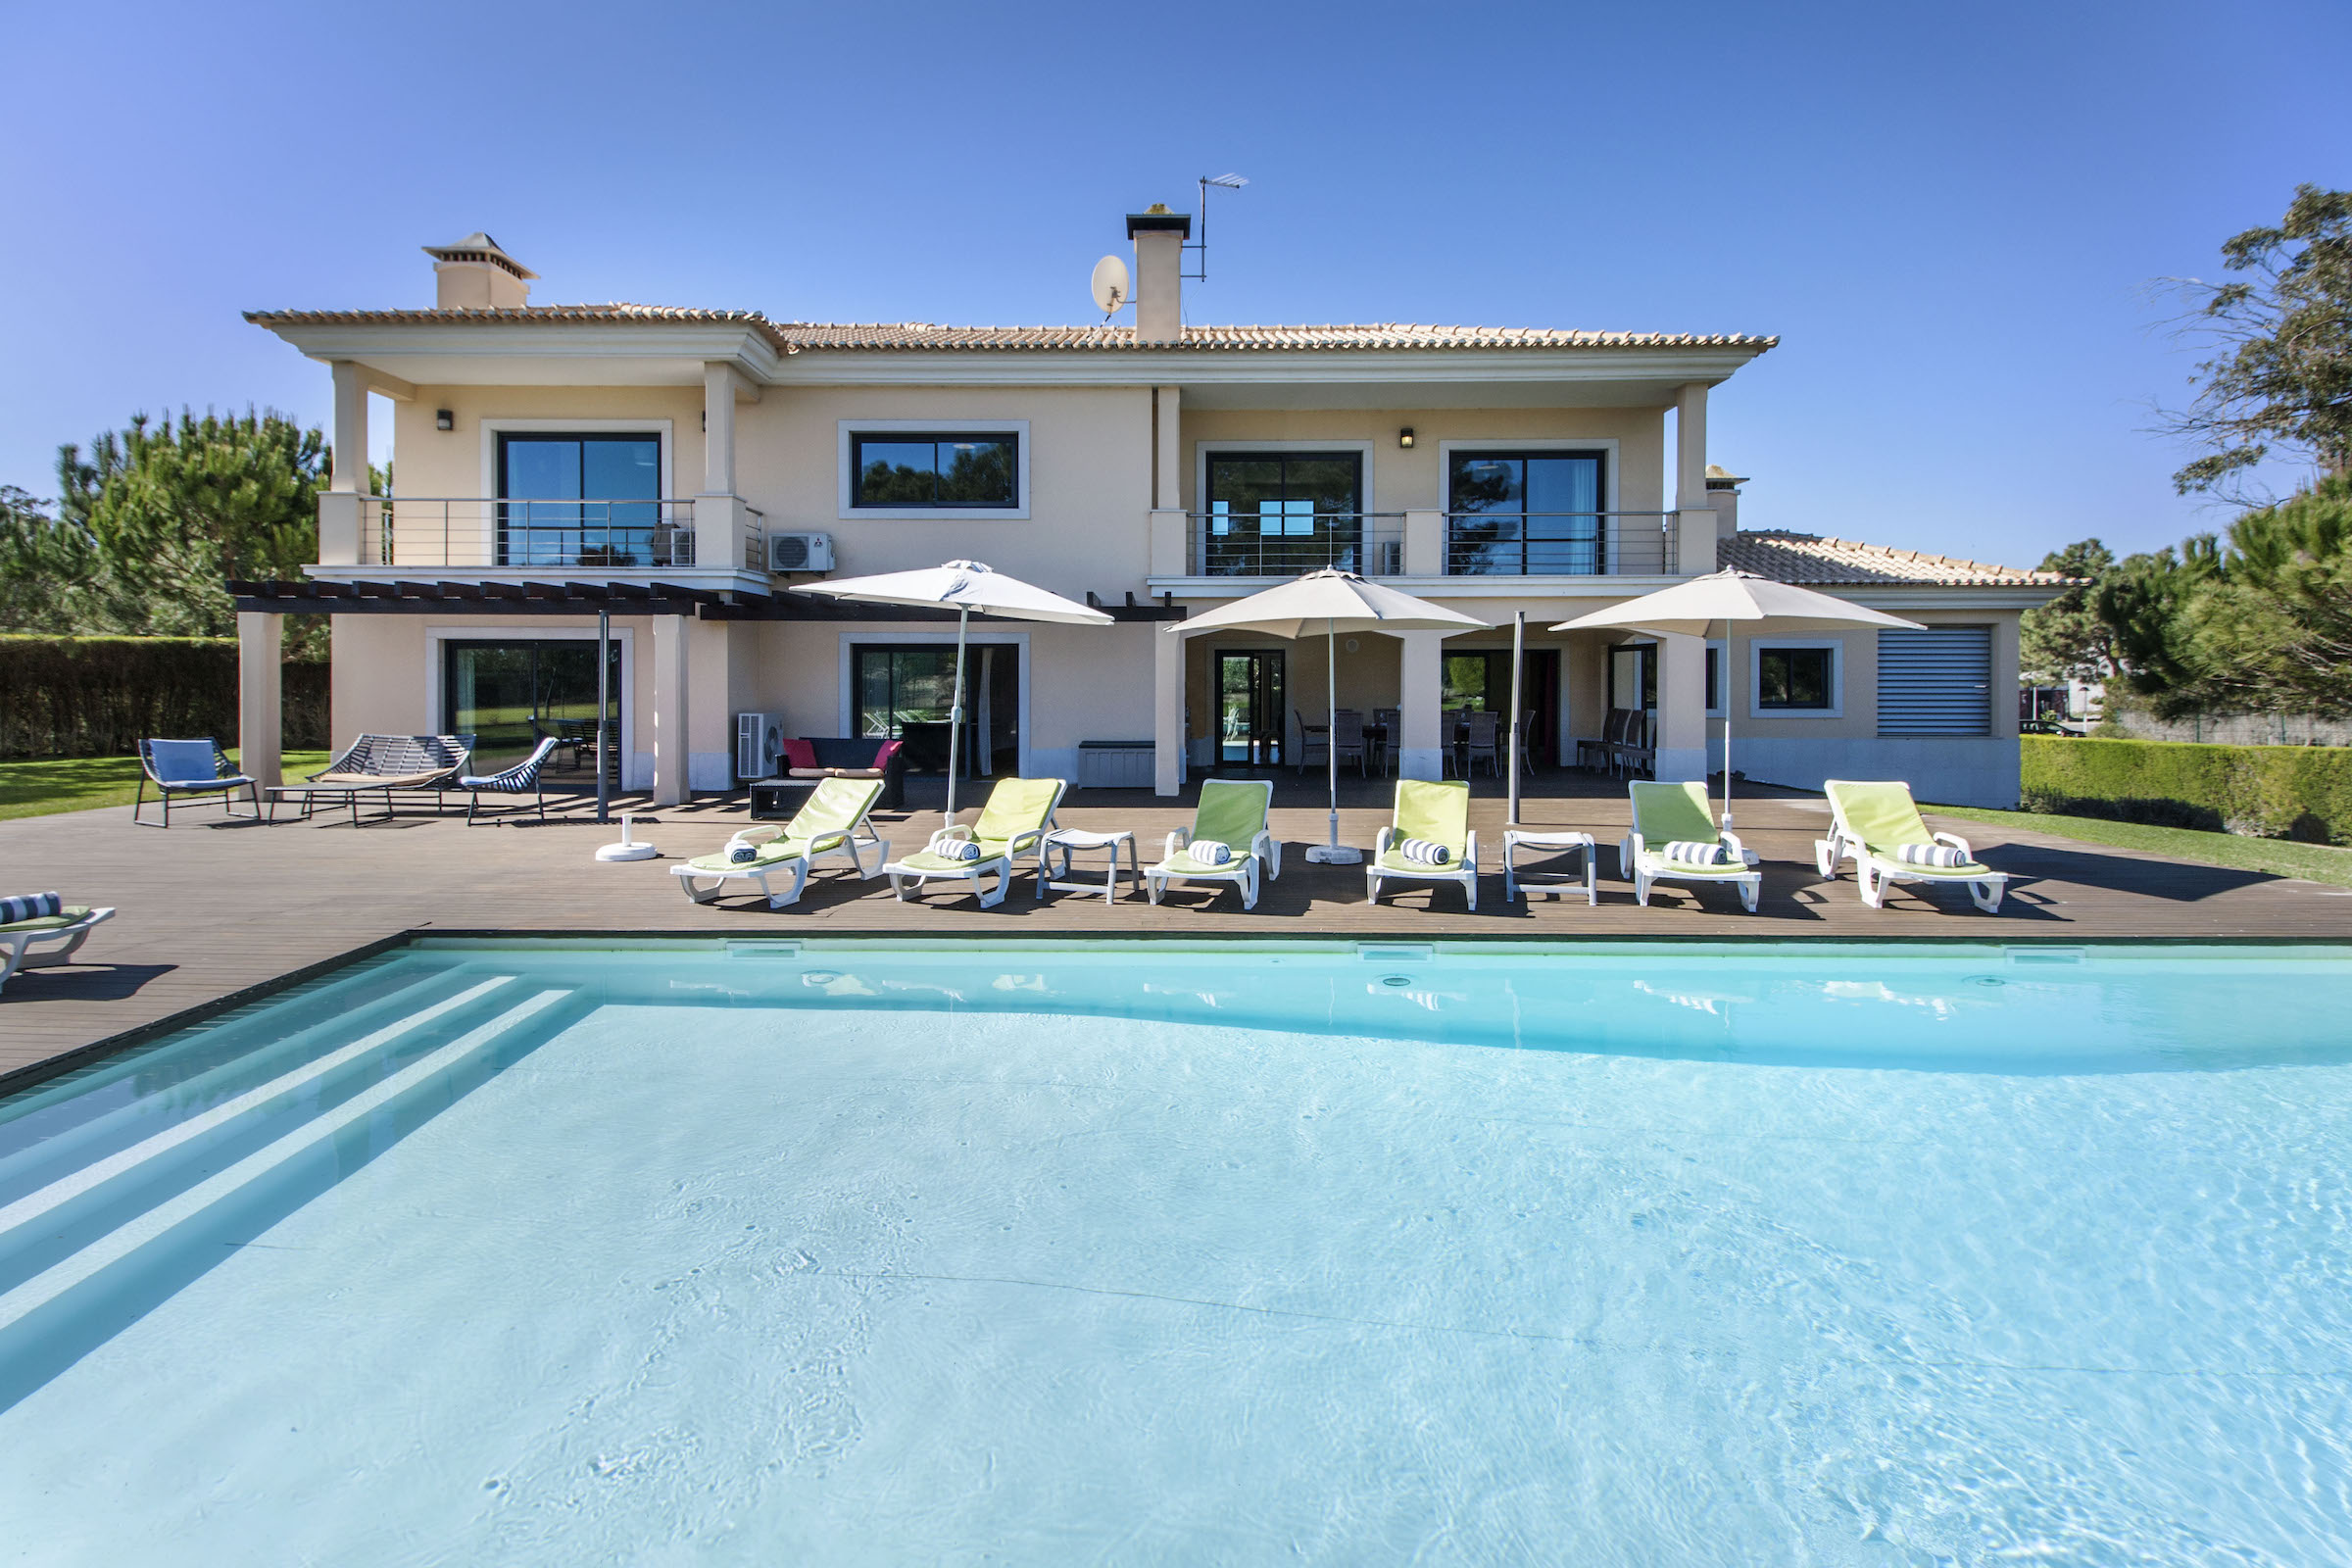 Property Image 2 - Wonderful beachfront villa with private pool and tennis court